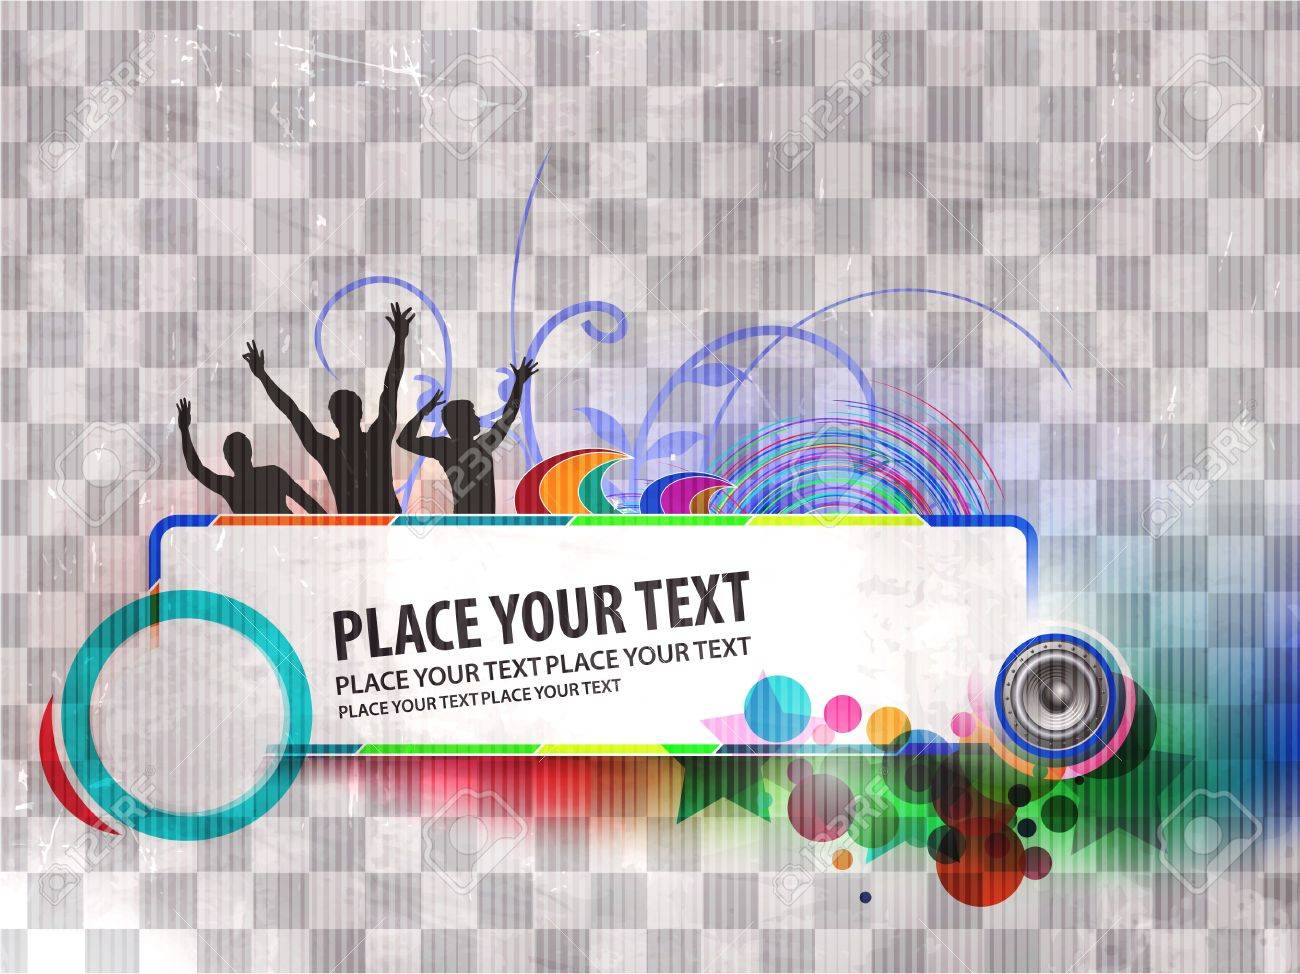 abstract urban music danace party banner background design